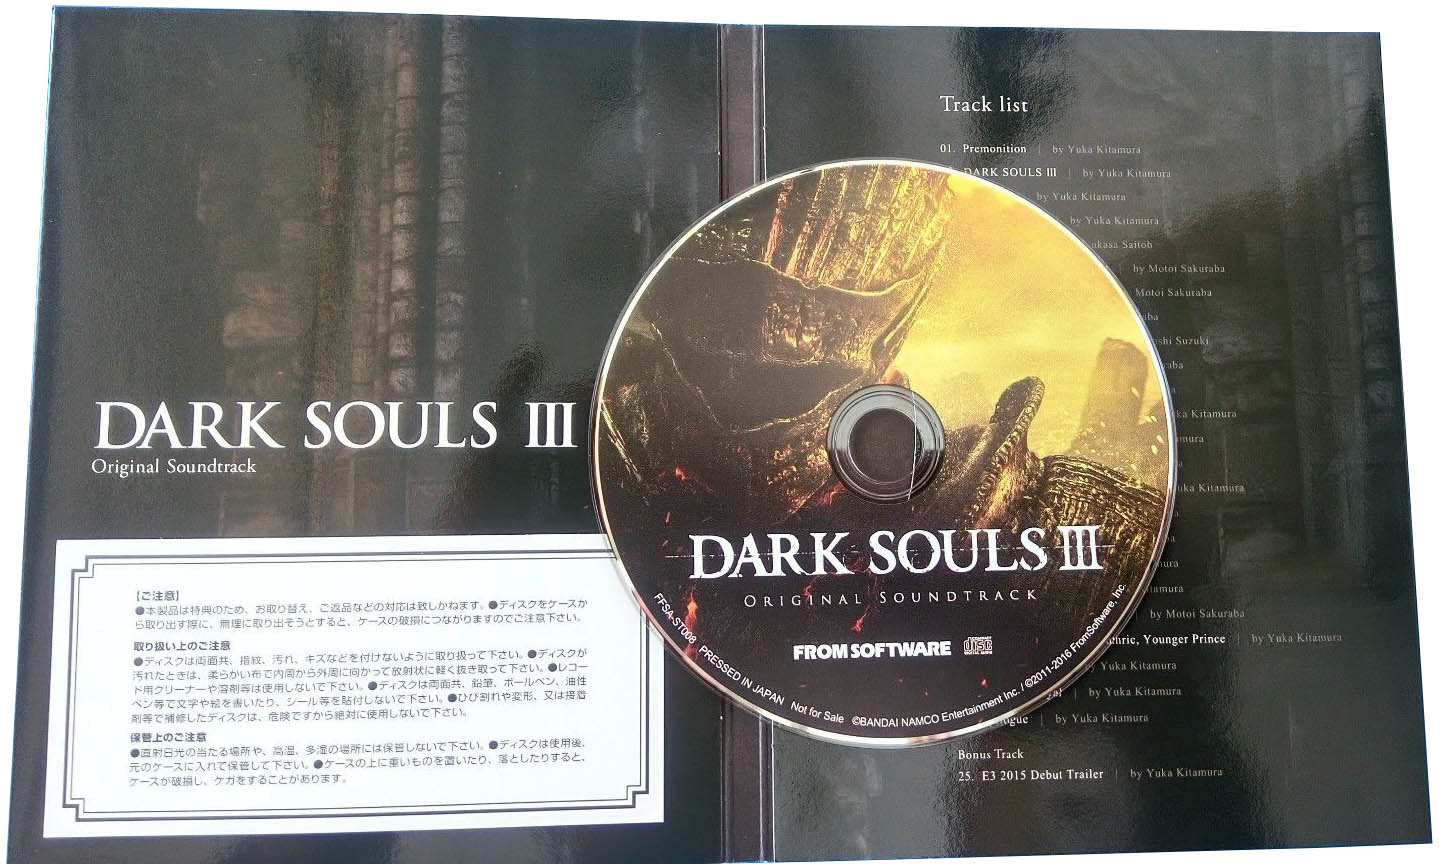 Dark Souls III Special Map & Original Soundtrack Коробка